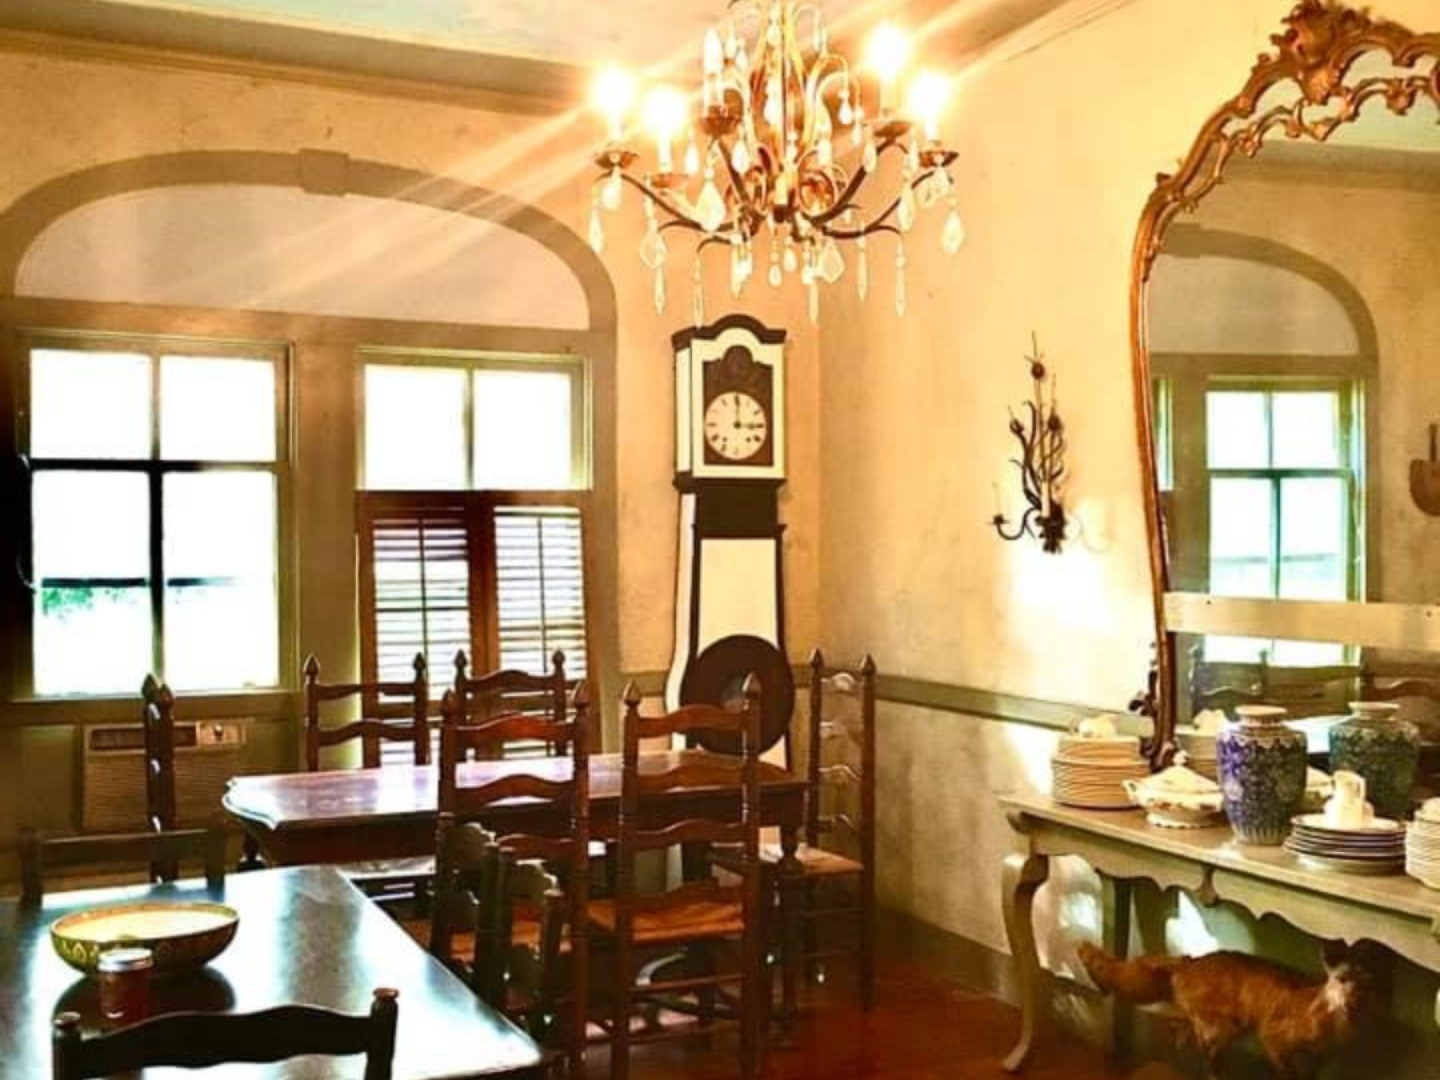 A dining room table in front of a window at John LaFleur's Louisiana Creole Guesthouse.